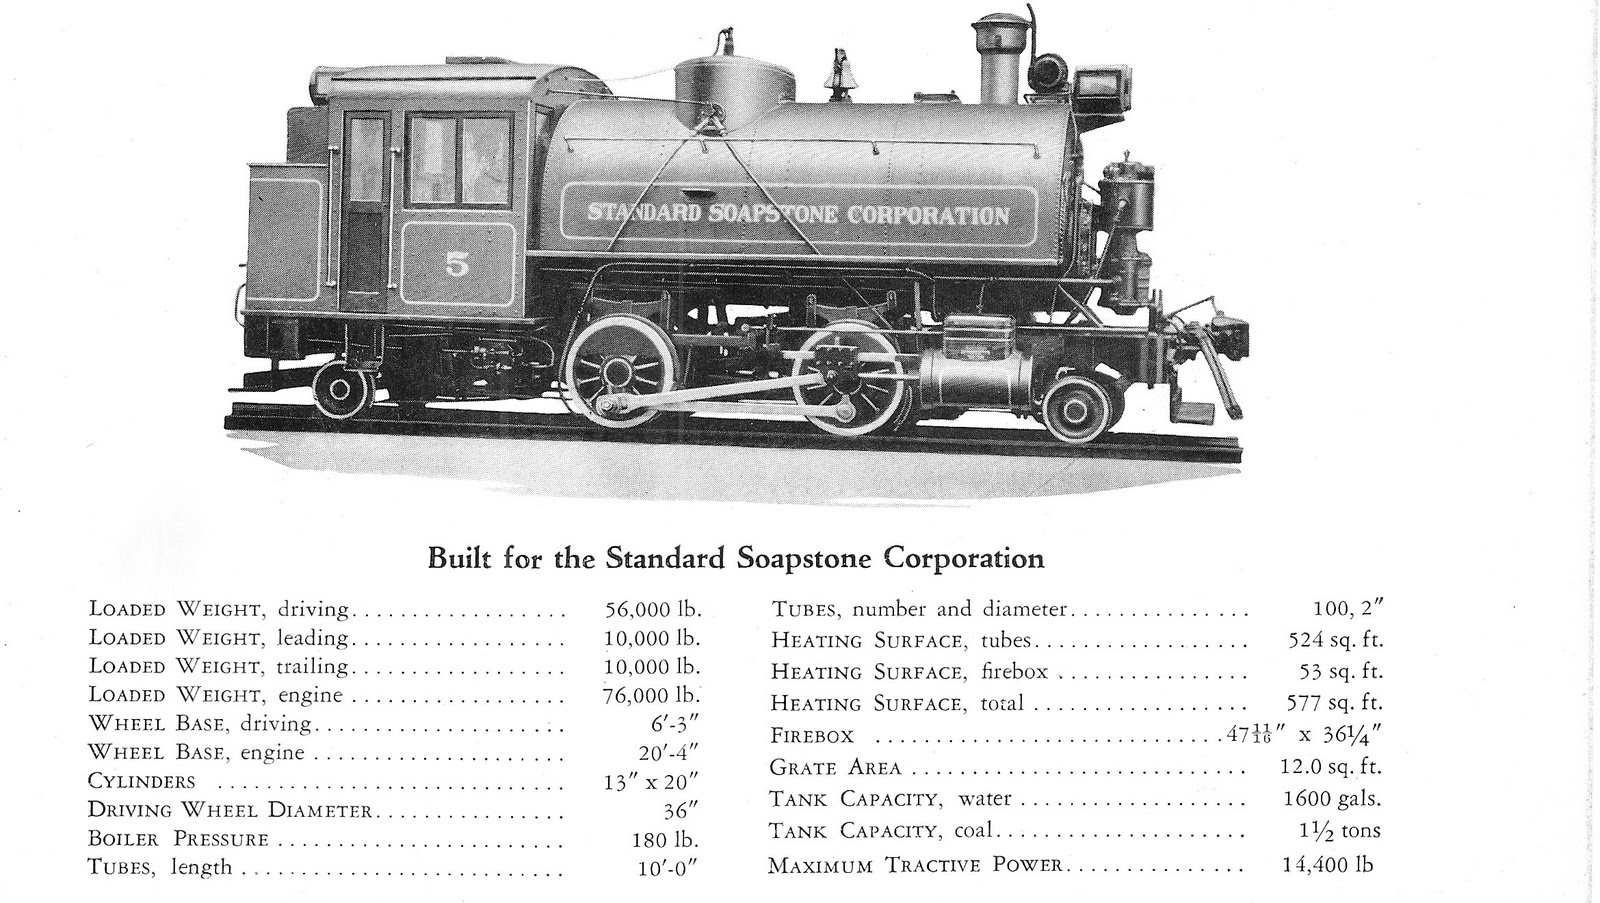 Standard Soapstone 2 4 2 Columbian Locomotives In The Usa